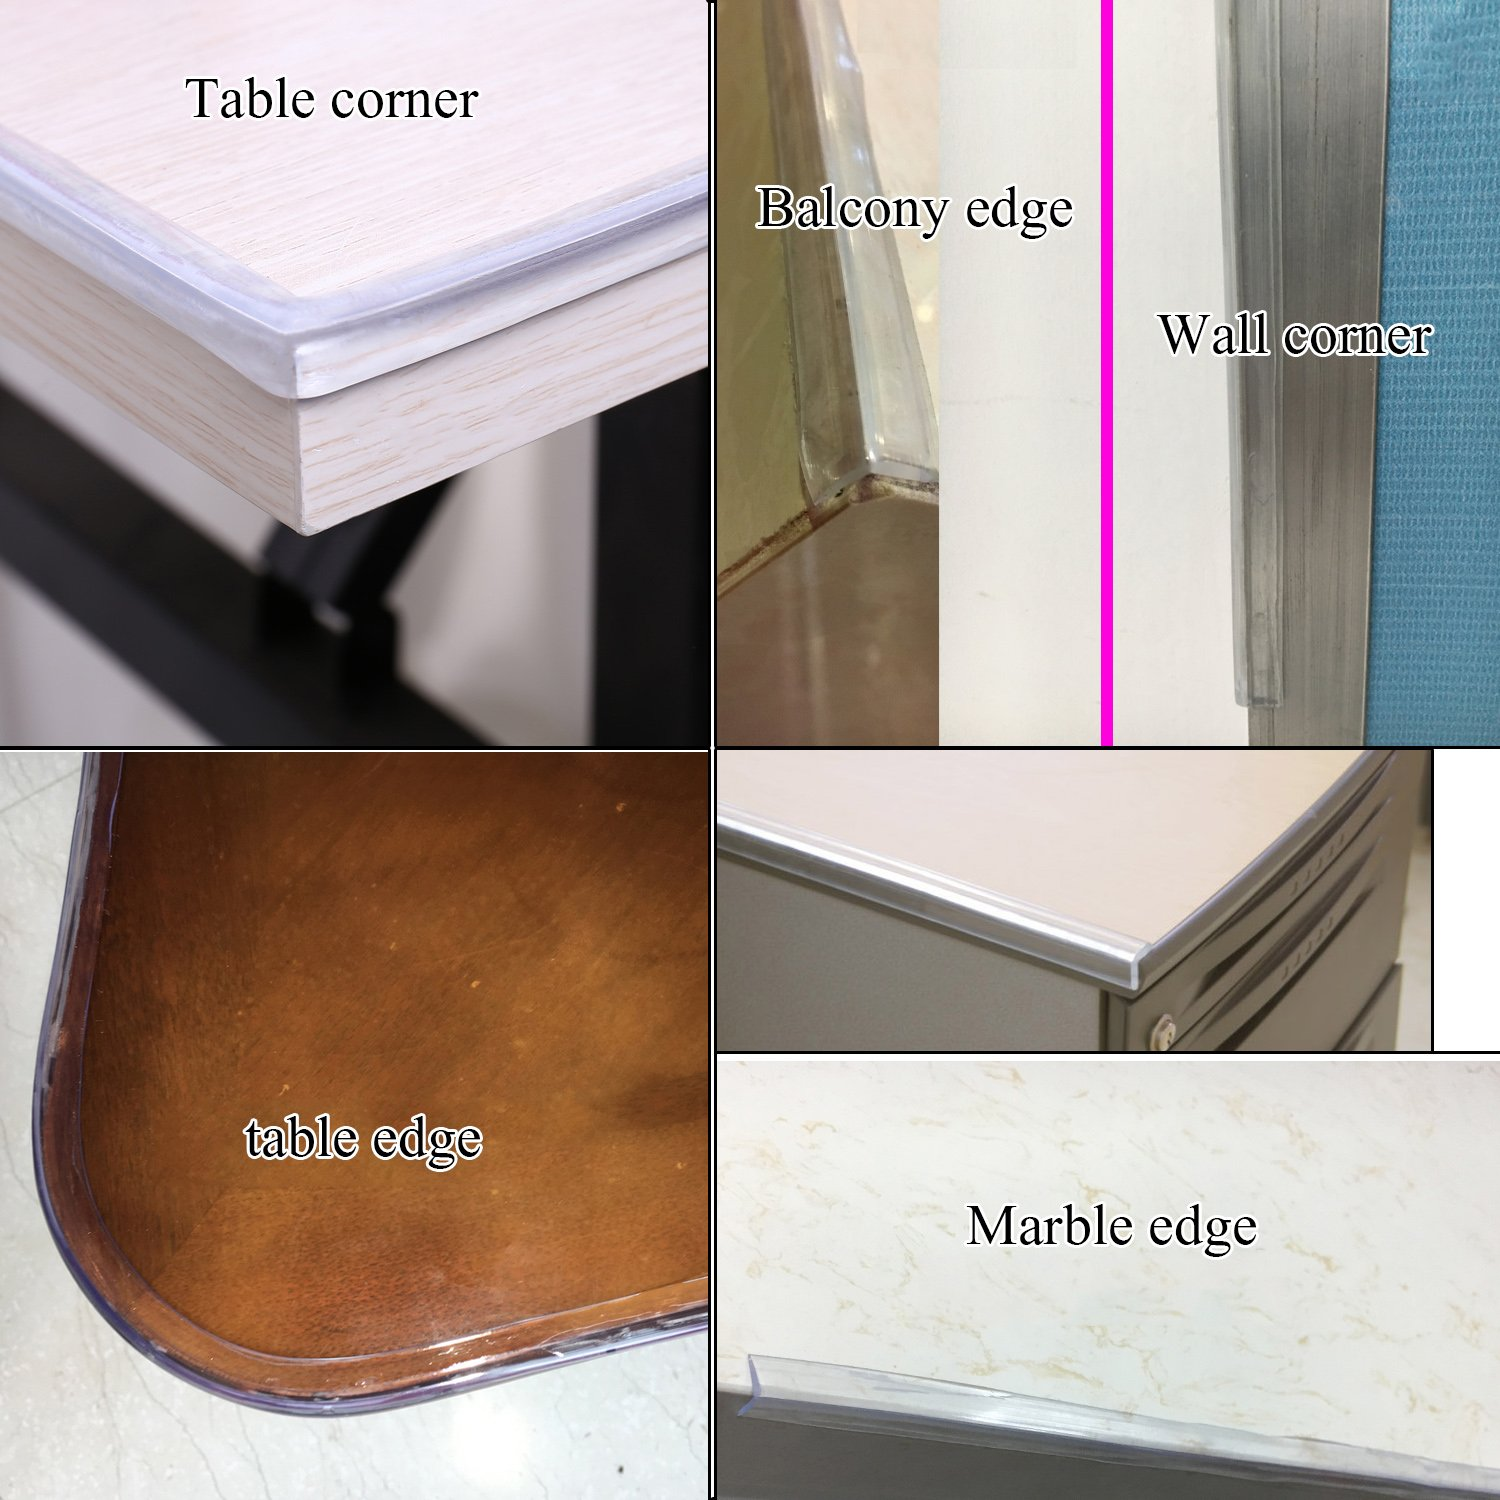 Furniture edges: overview, types, features of pasting 64